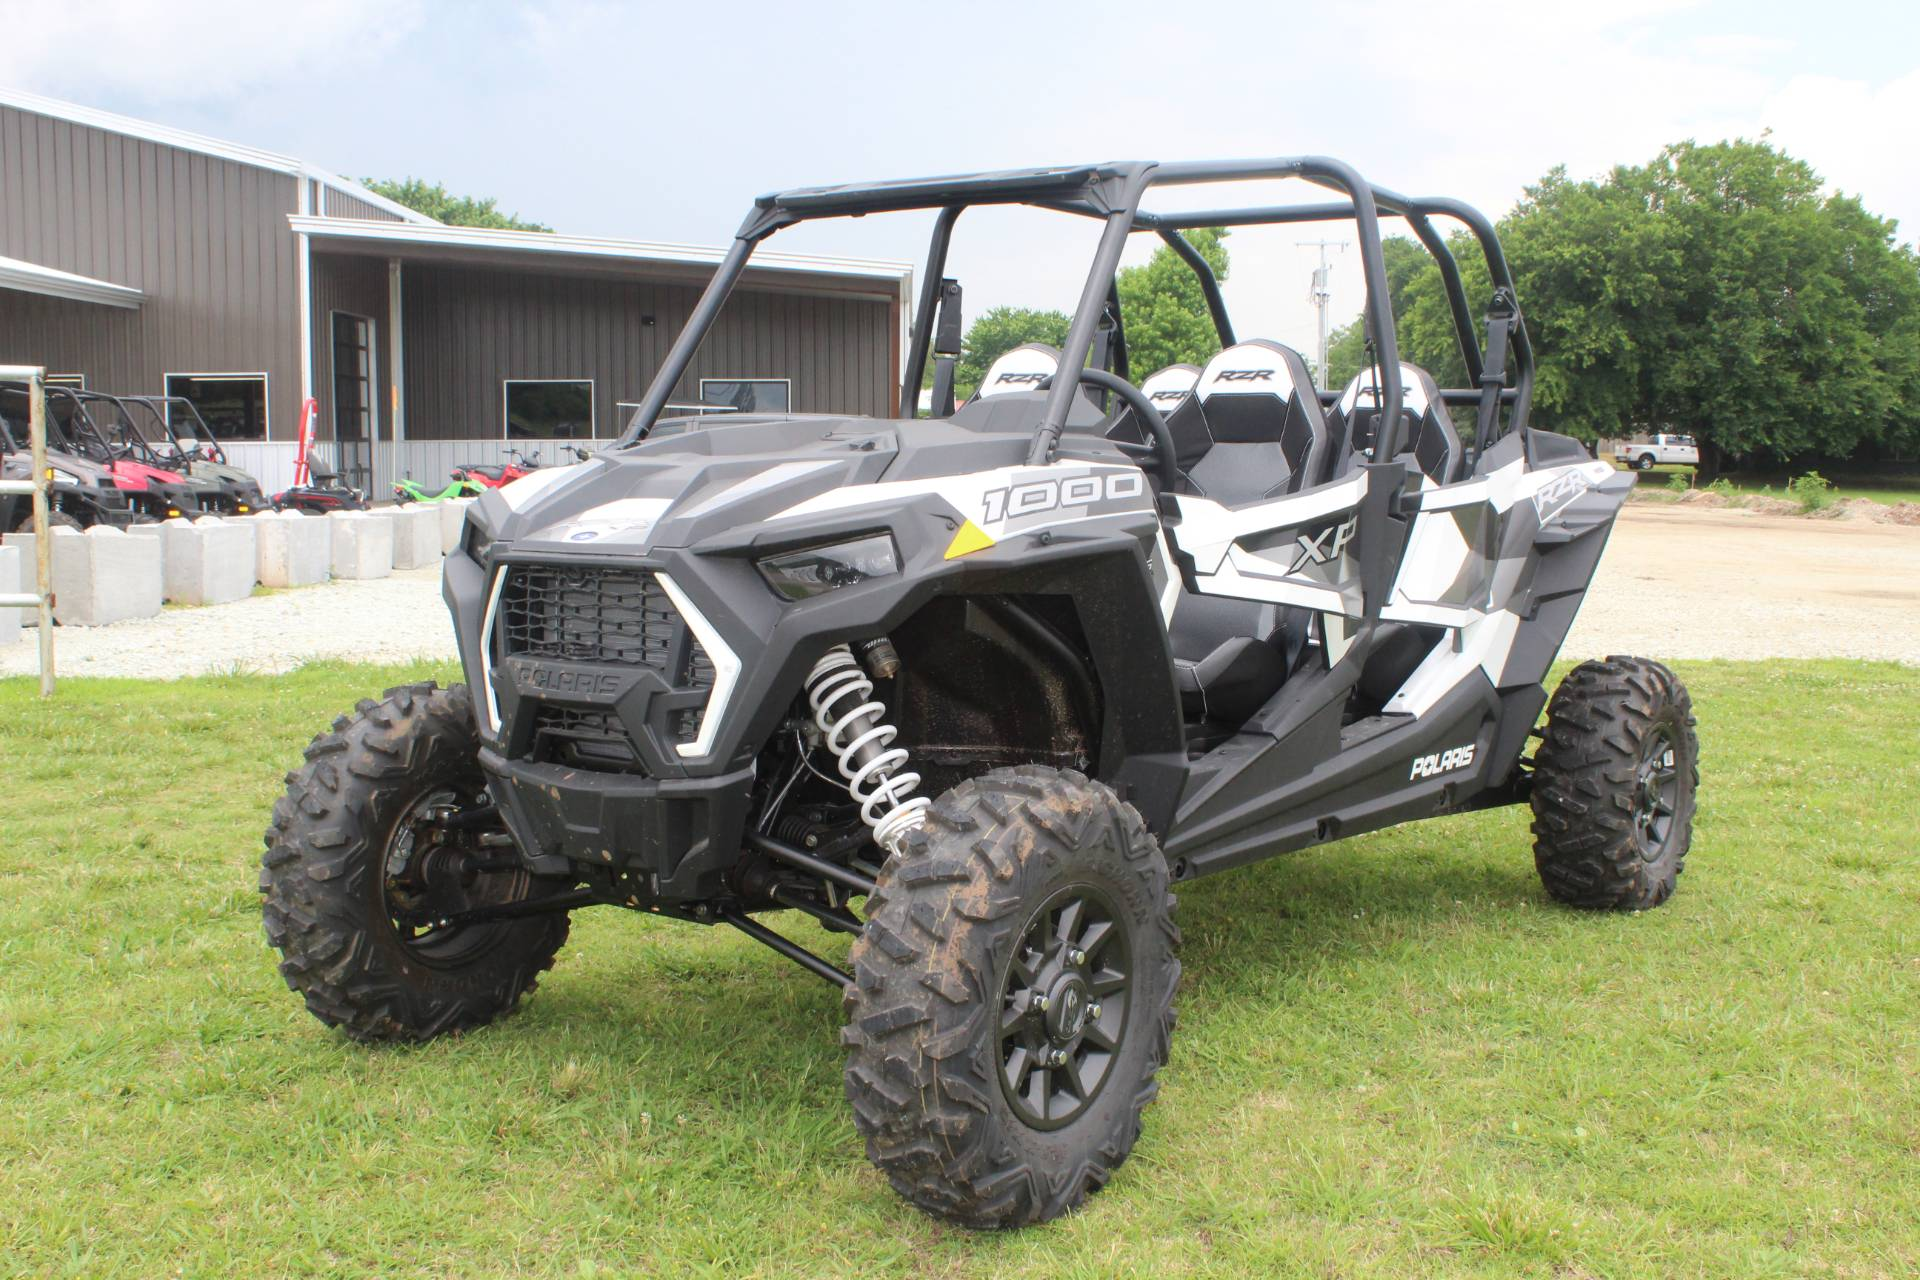 2019 Polaris RZR XP 4 1000 EPS in Ada, Oklahoma - Photo 2